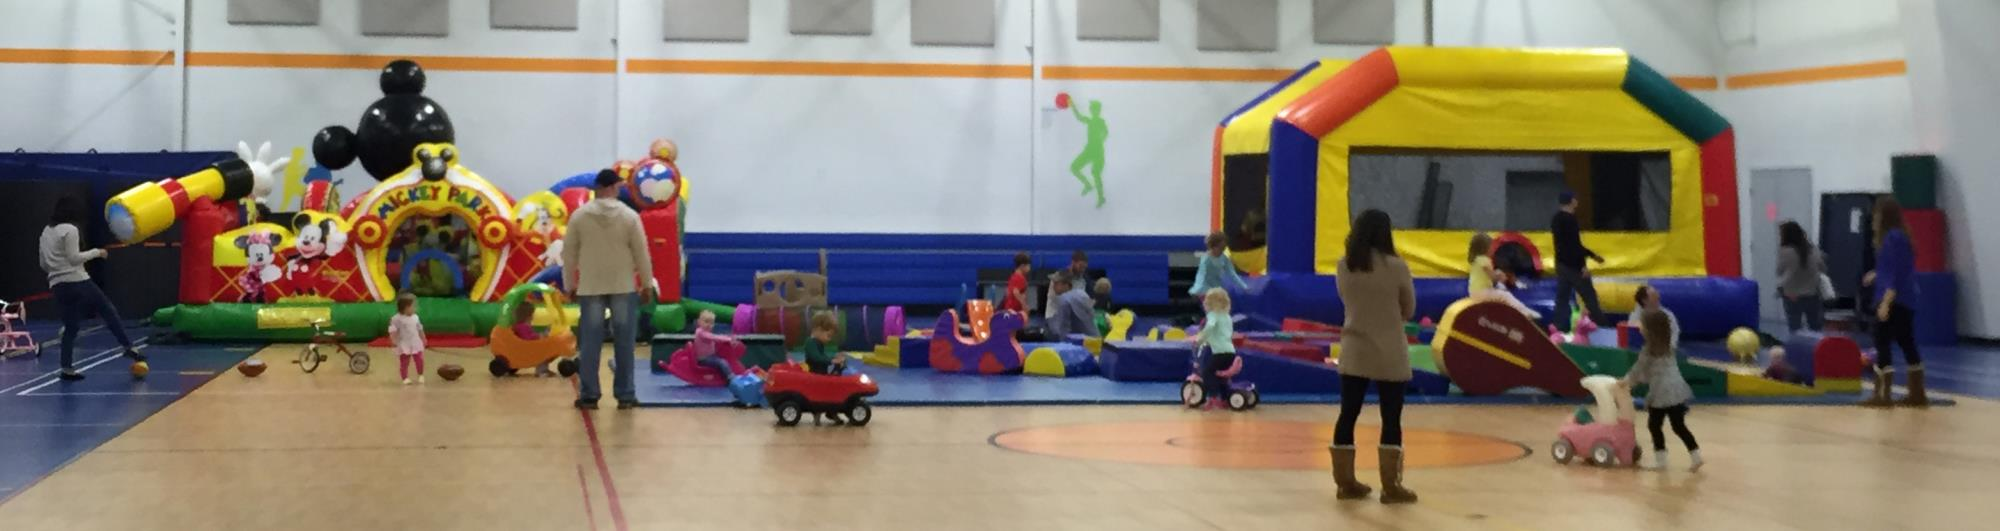 Indoor Playground cropped for banner